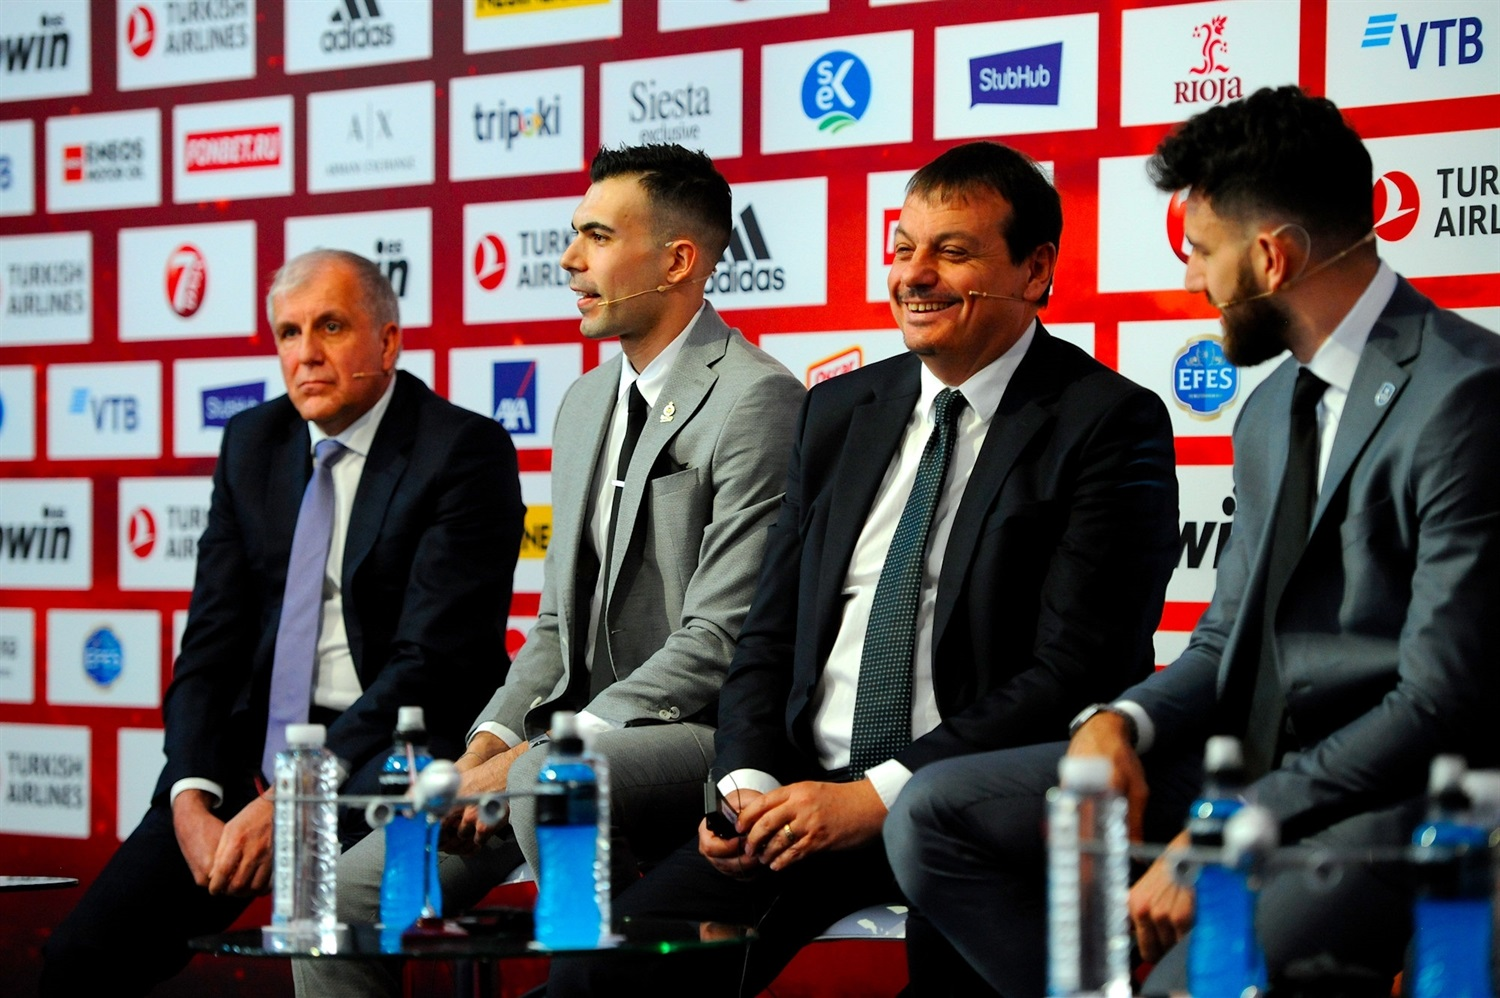 Ergin Ataman - Opening Press Conference - Final Four Vitoria-Gasteiz 2019 - EB18